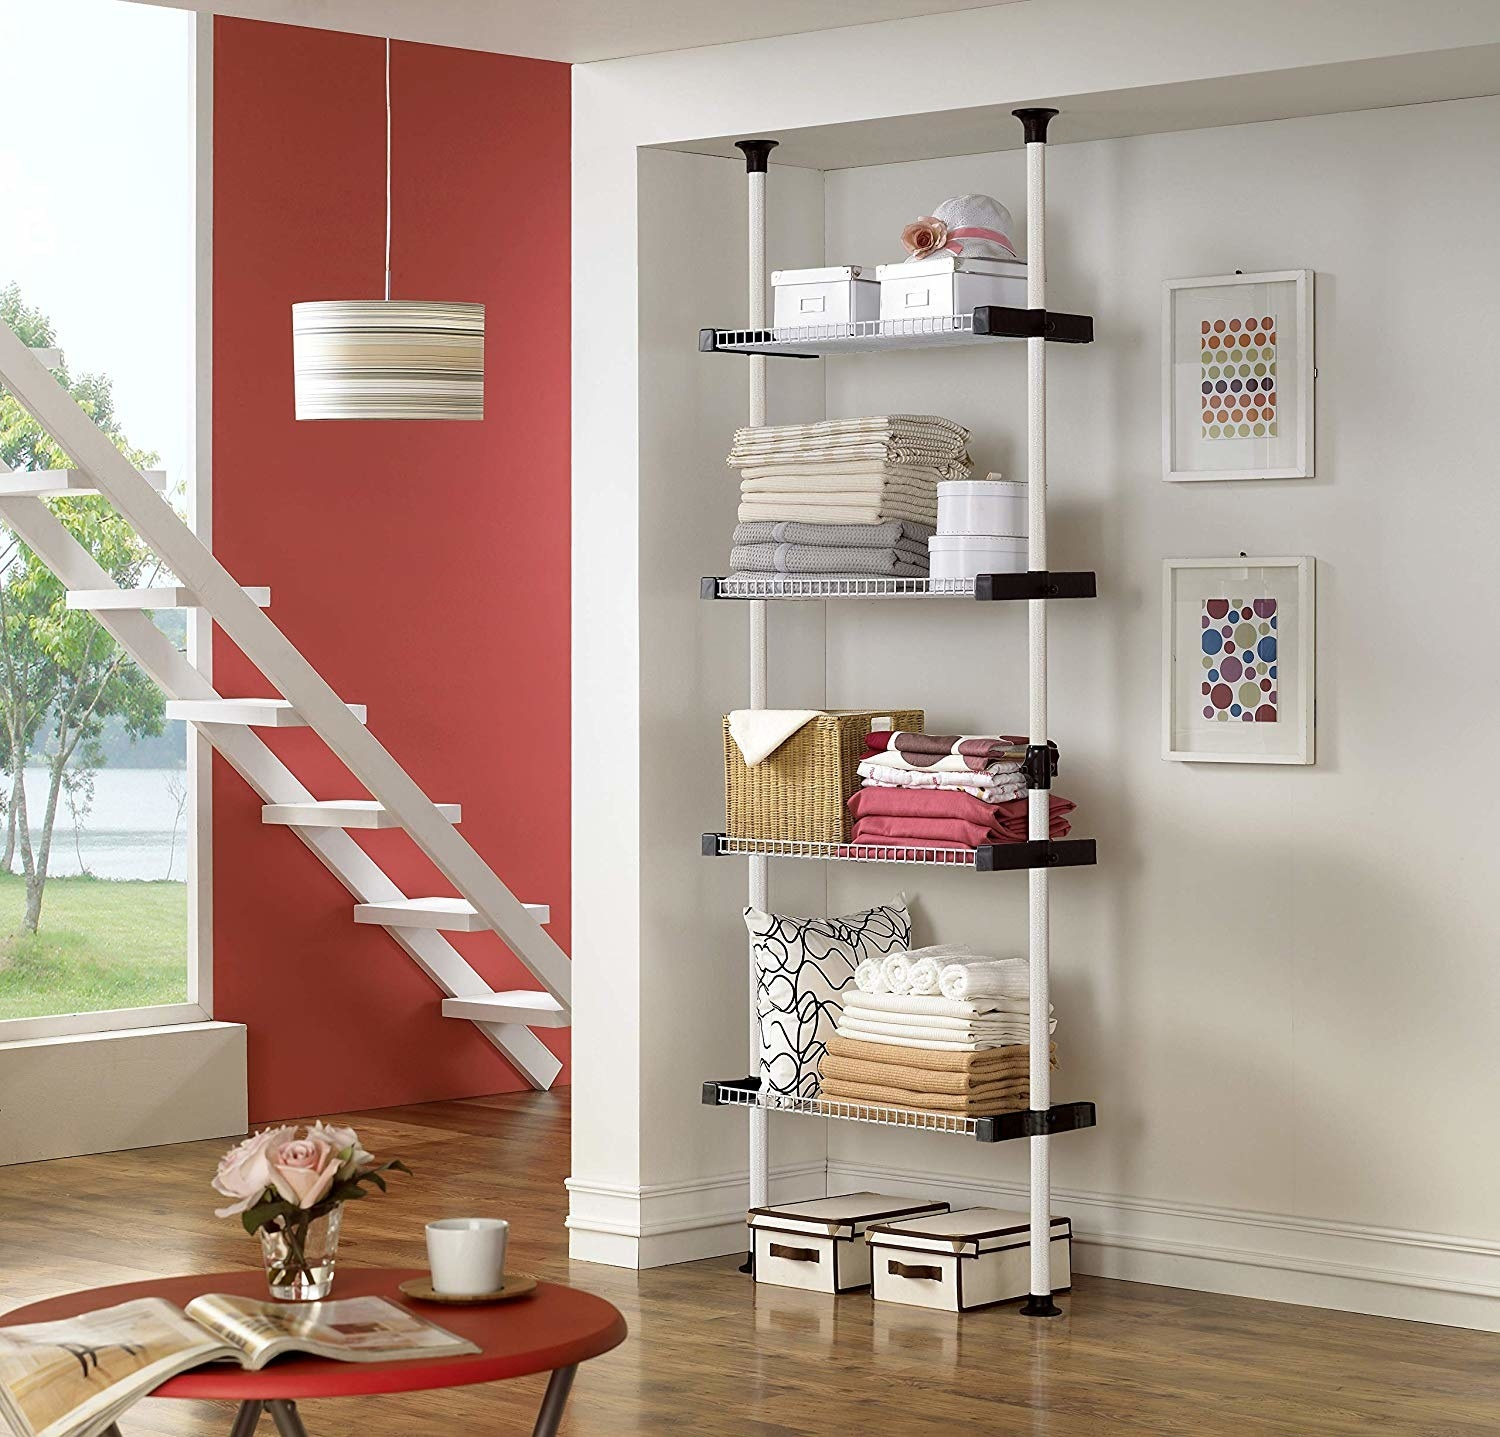 The four-shelf closet system secured in a wall nook.